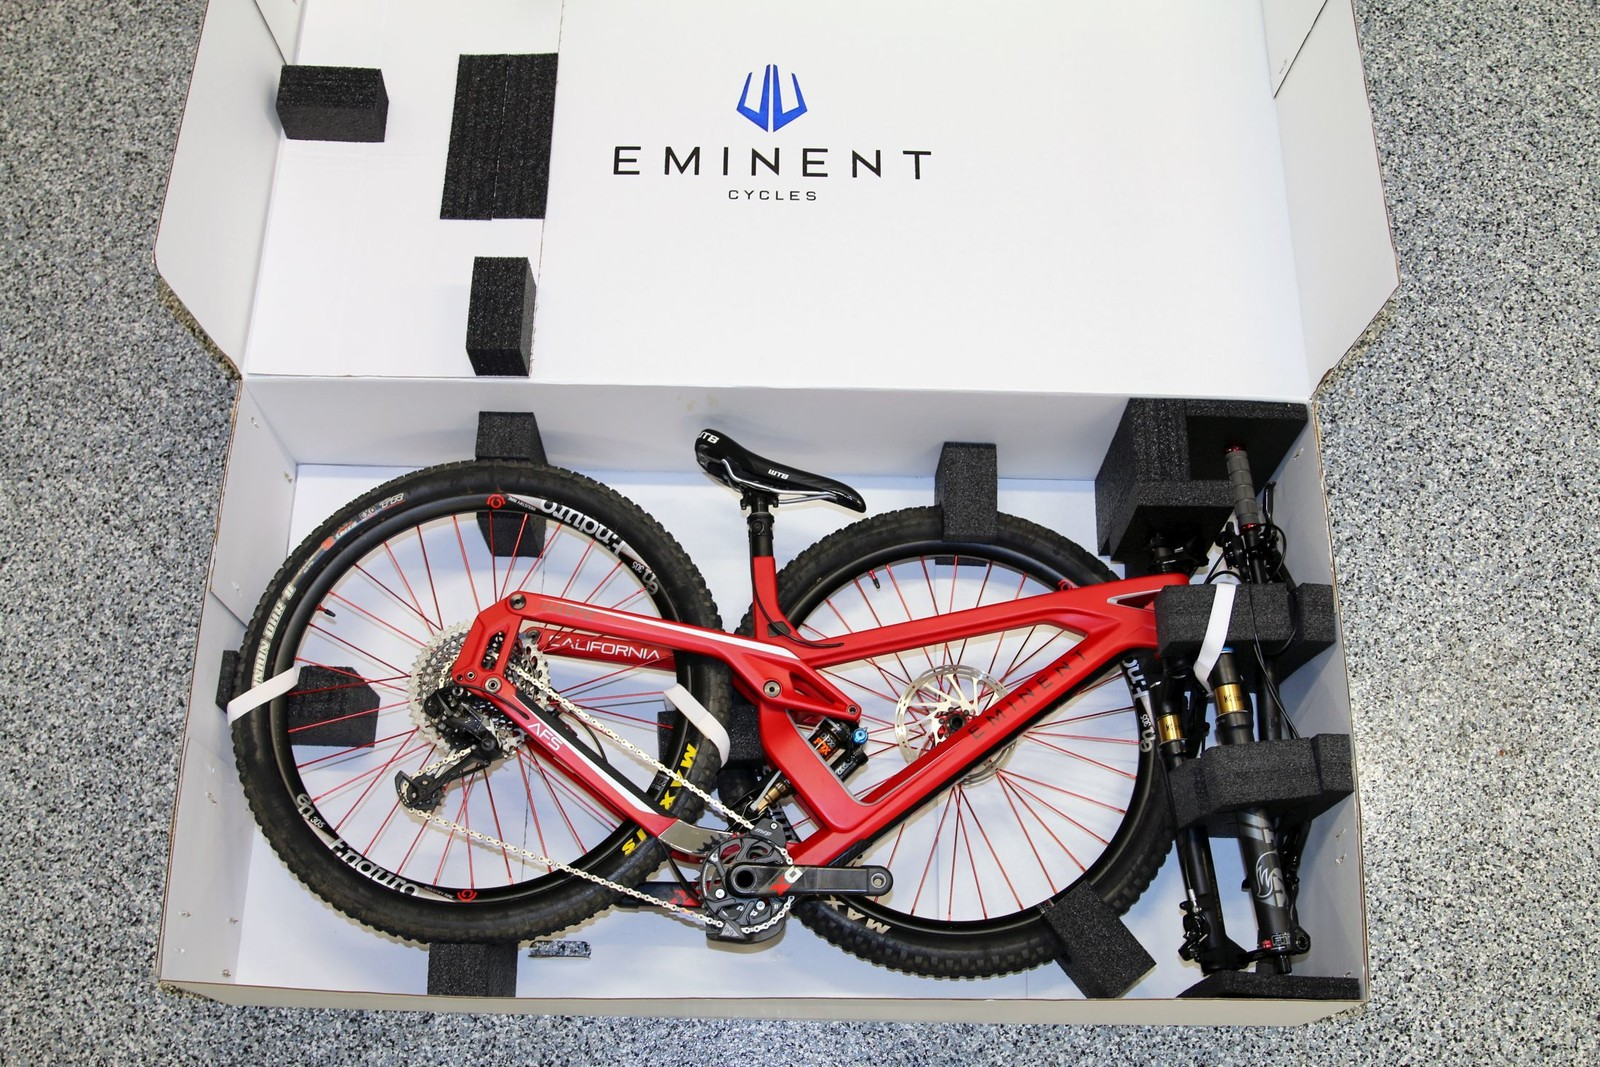 First Look: Eminent Cycles Haste - Mountain Bikes Feature Stories